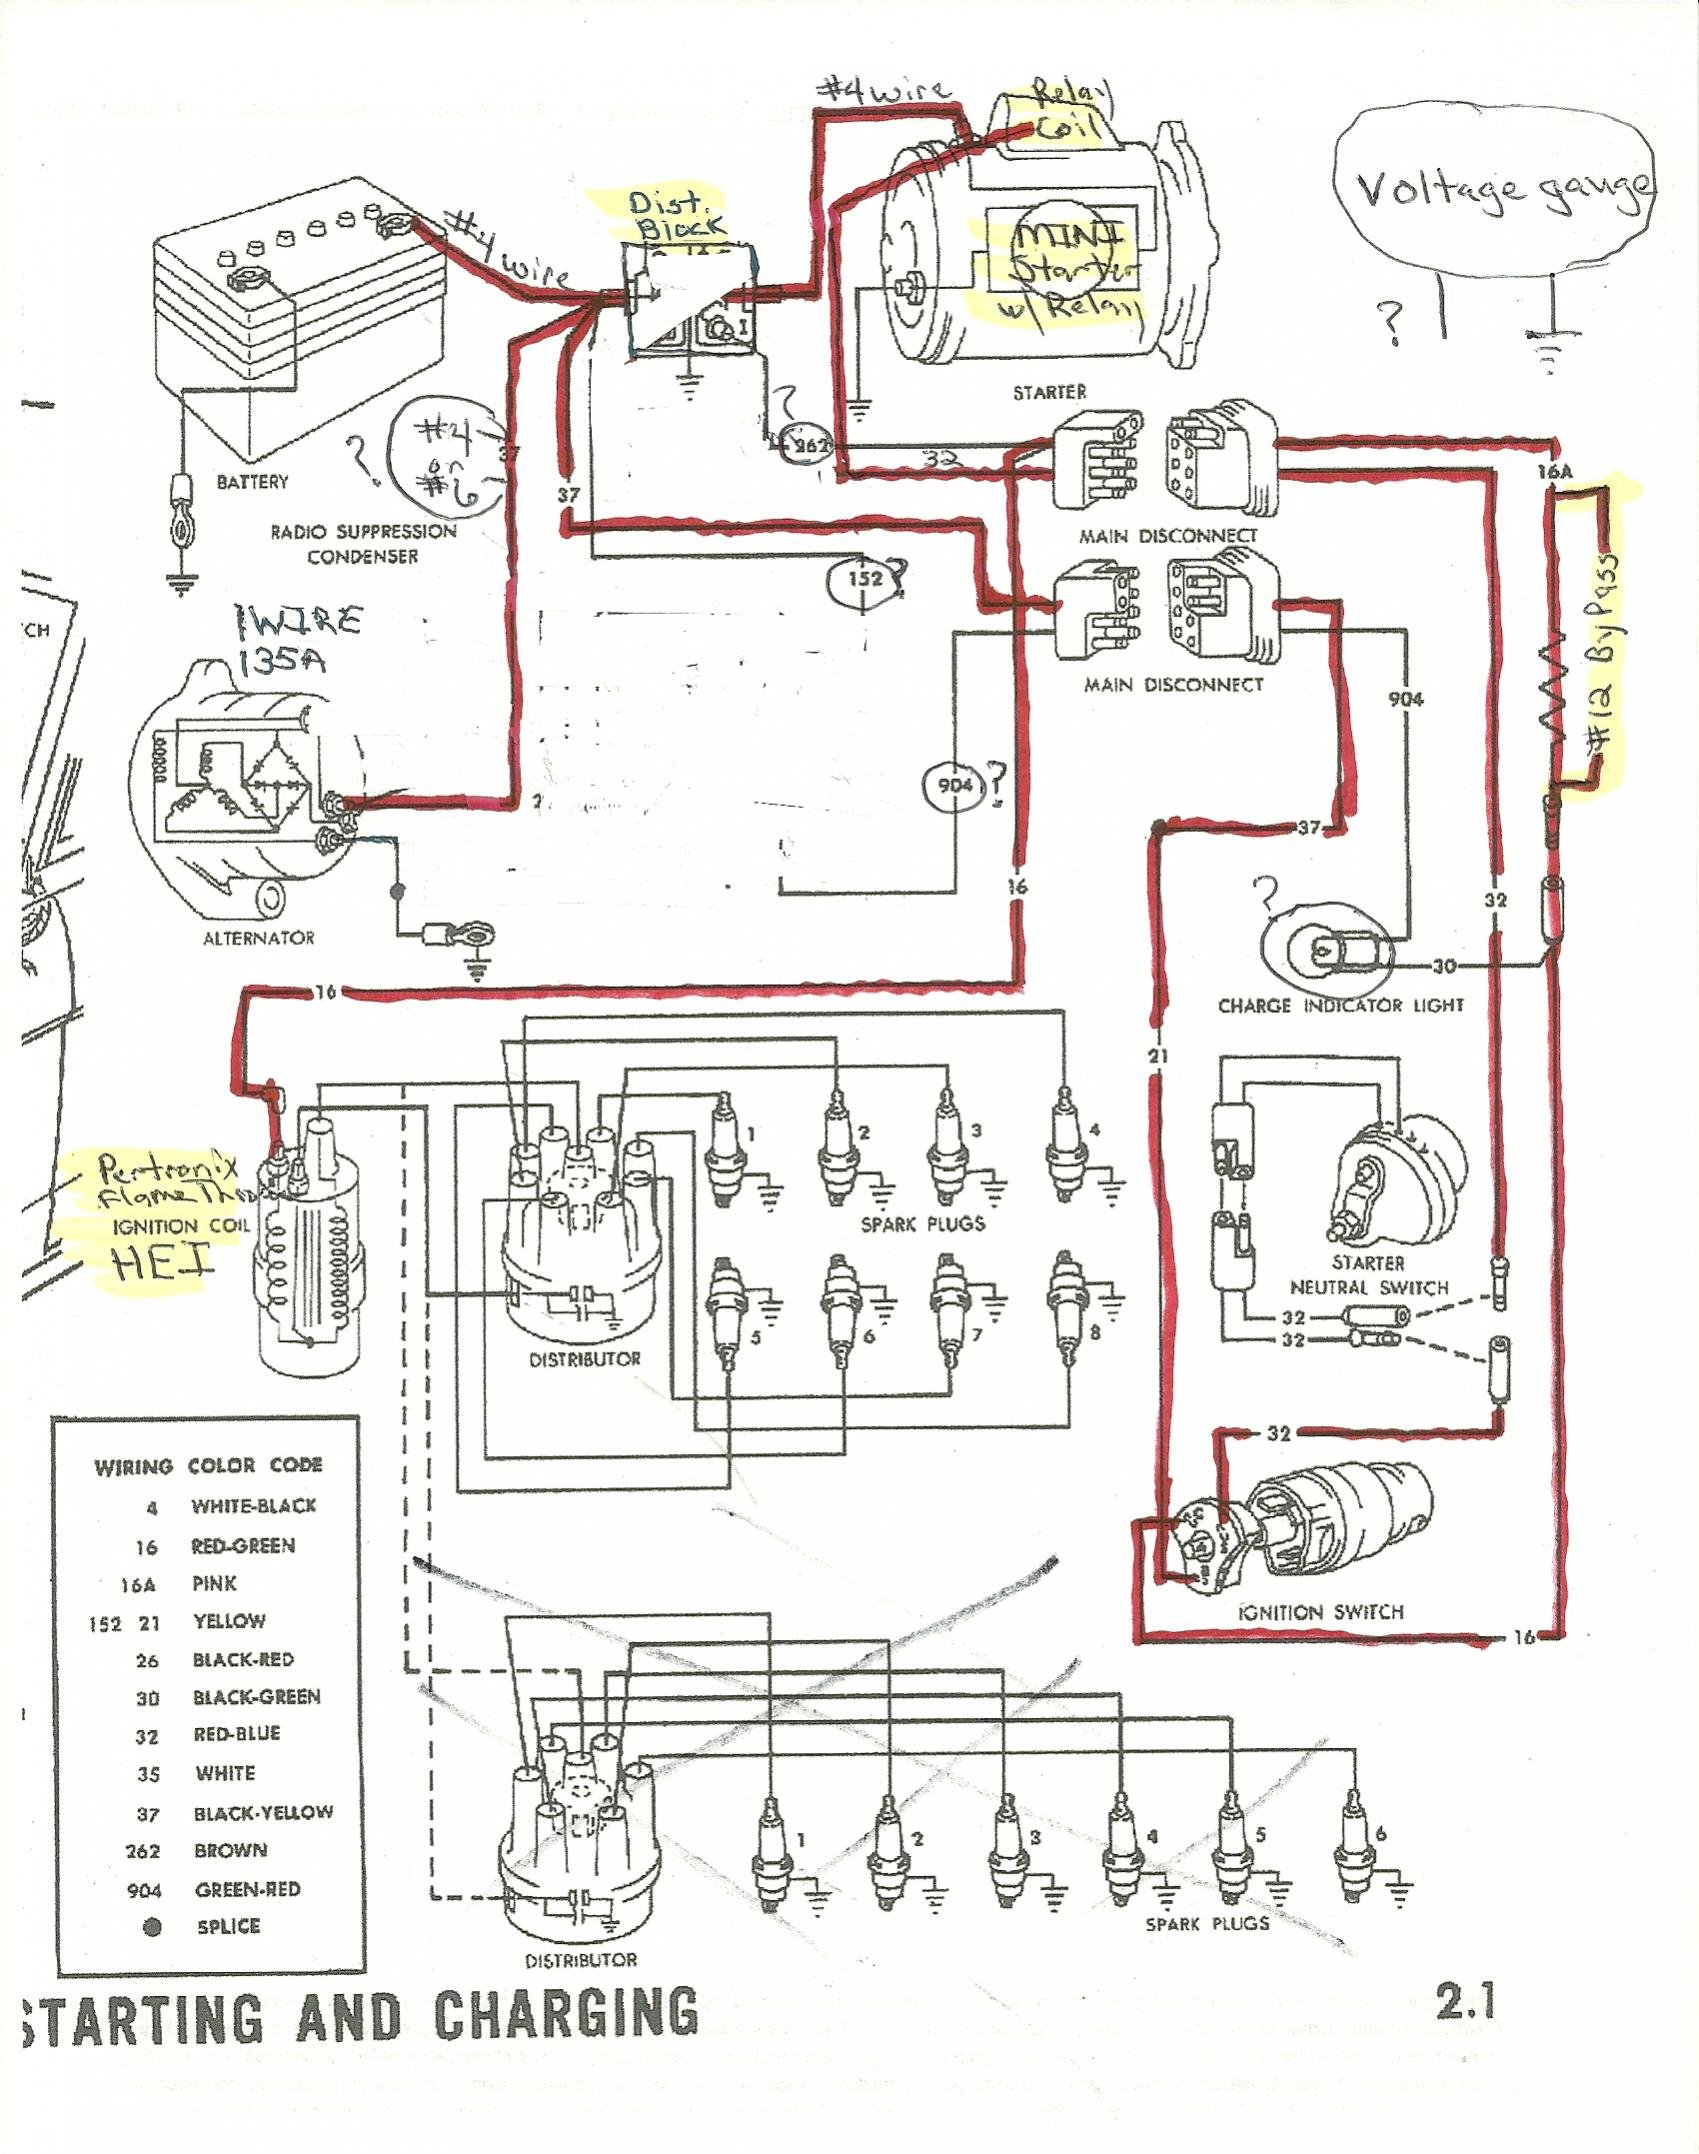 163469d1347246202 1965 alternator starter distributor wiring scan0001 1970 ford mustang mercury cougar original wiring diagram Ford Alternator Wiring Diagram at bayanpartner.co